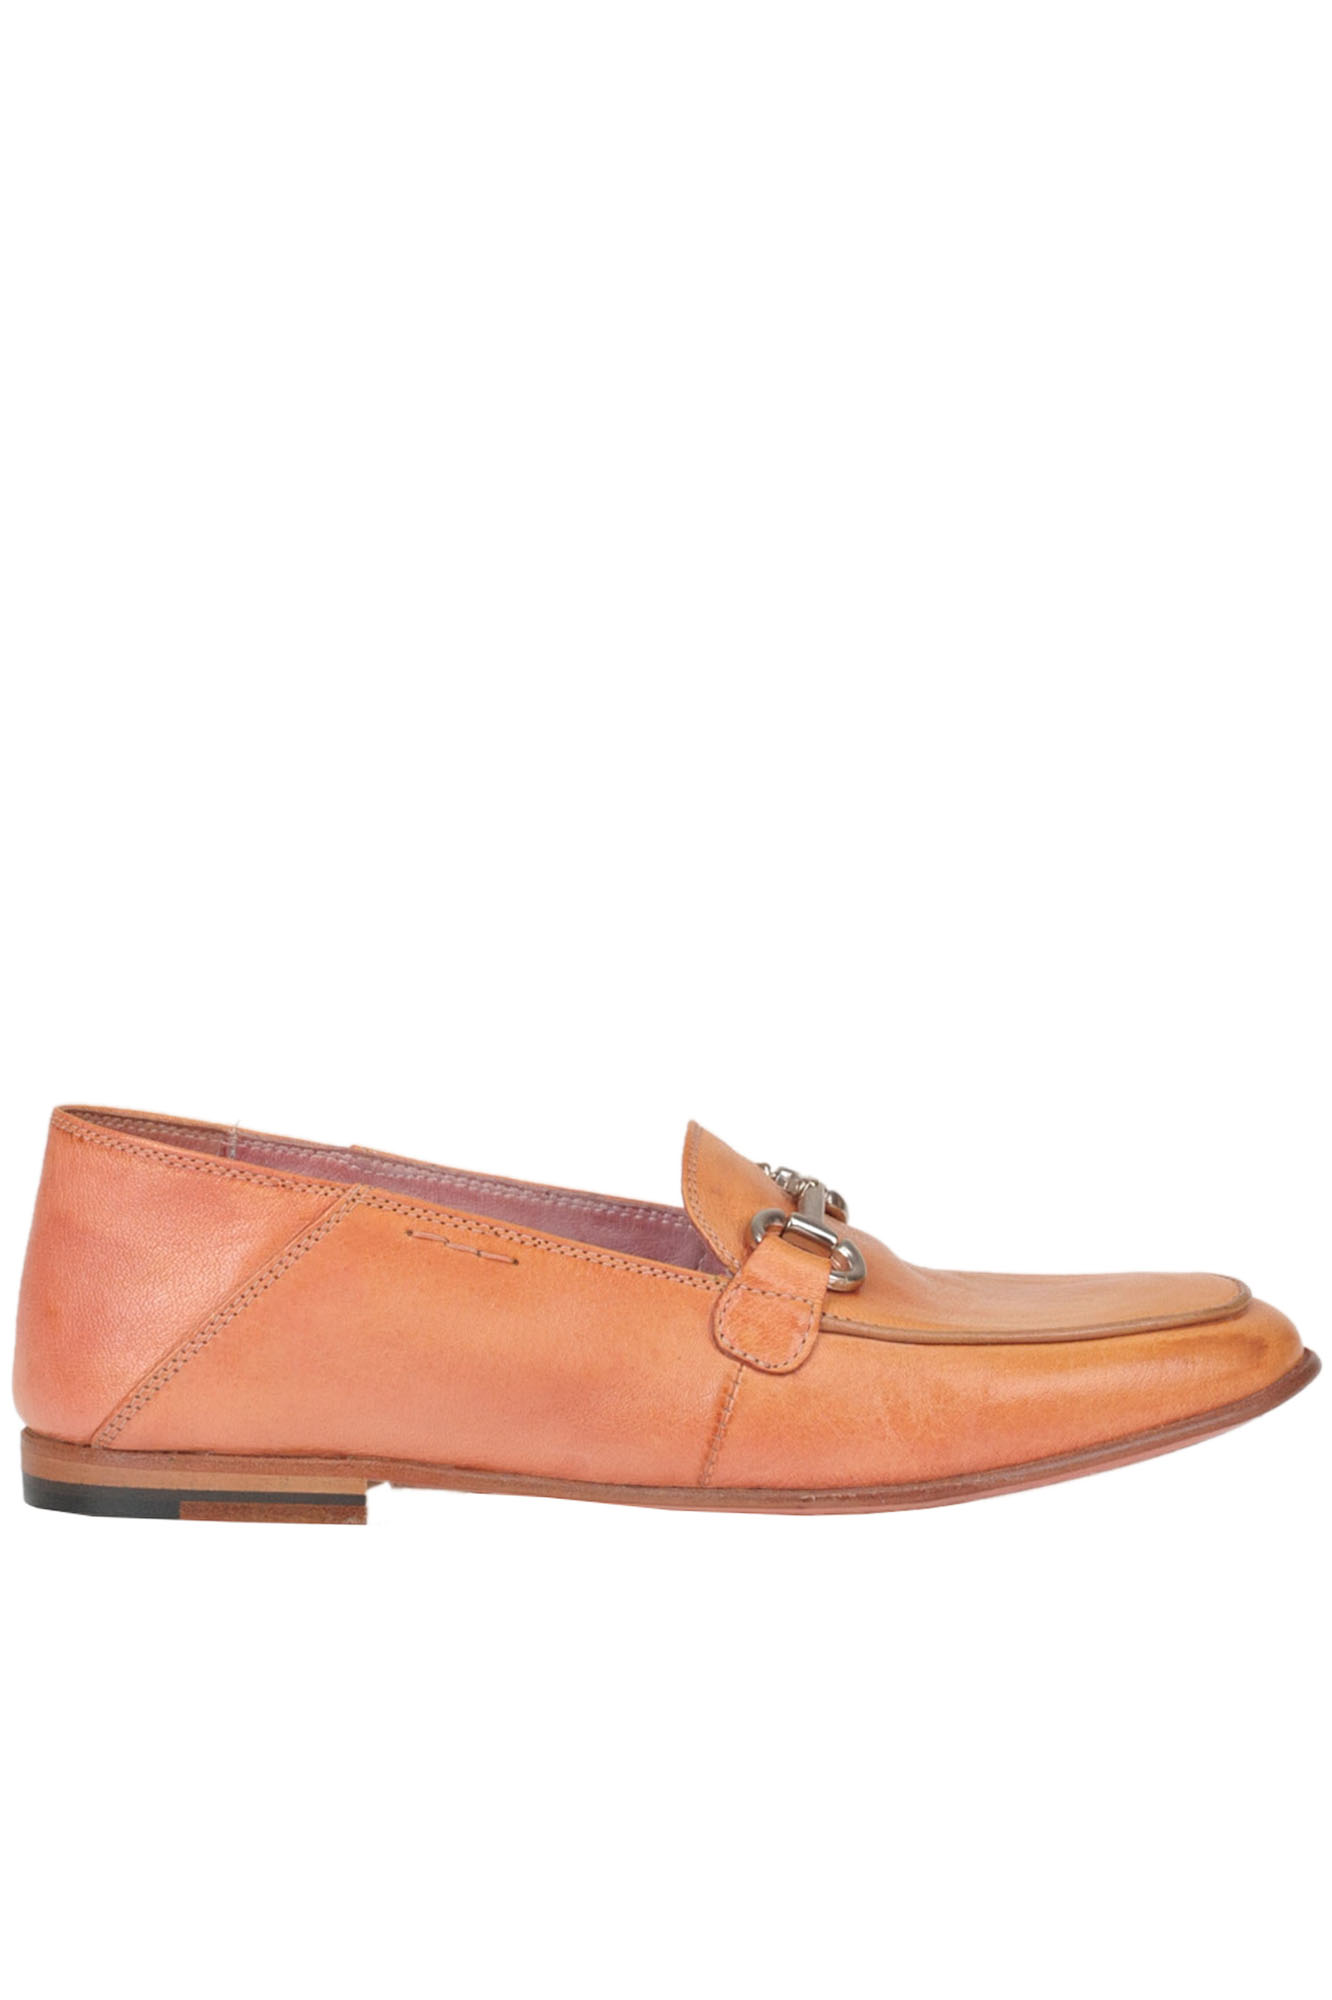 ALEXANDER HOTTO Metal Buckle Leather Mocassins in Salmon